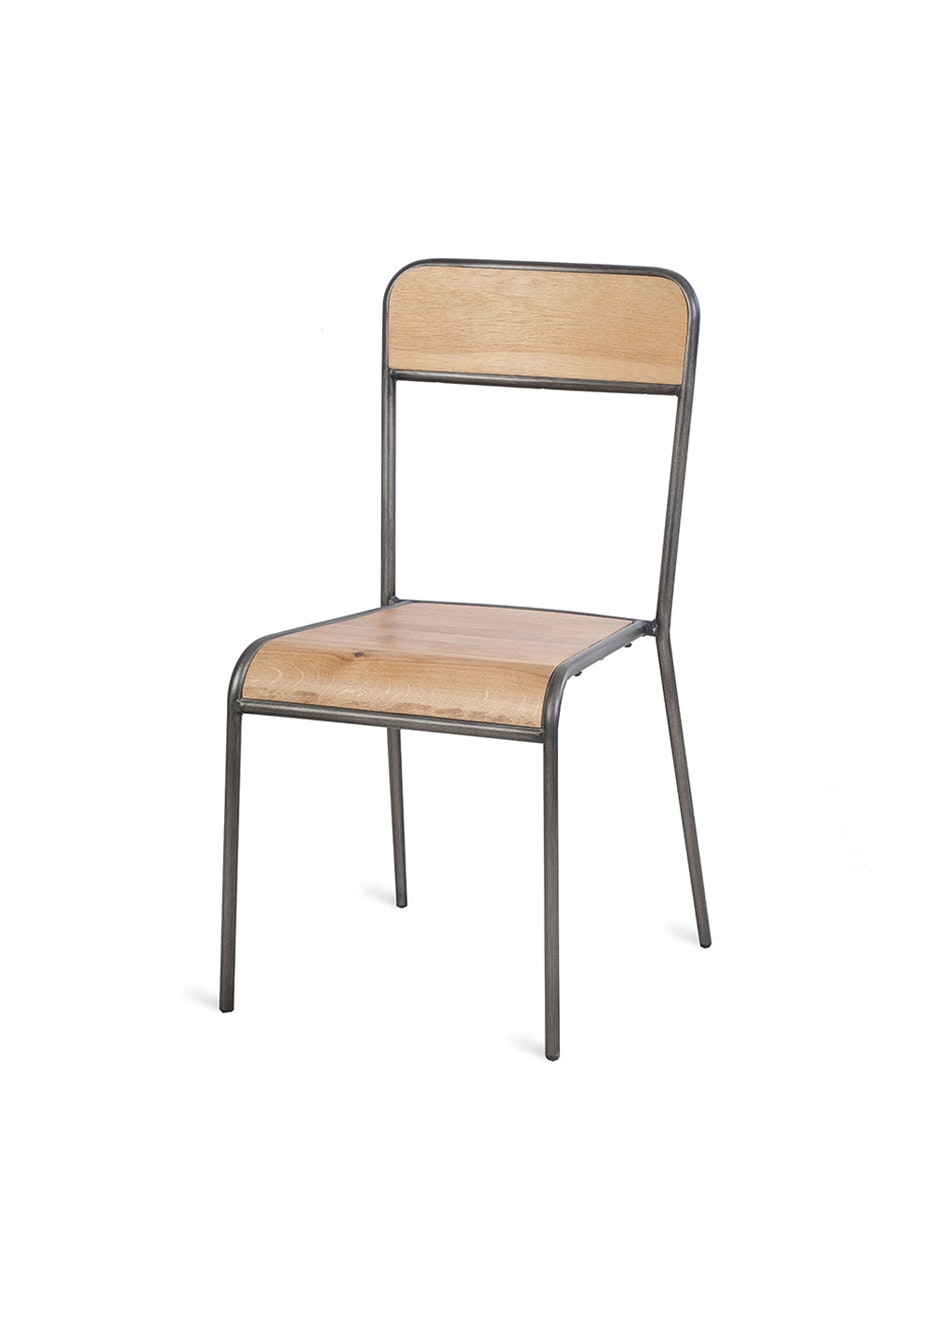 Furniture By Design - Skhol Chair - Brushed Metal